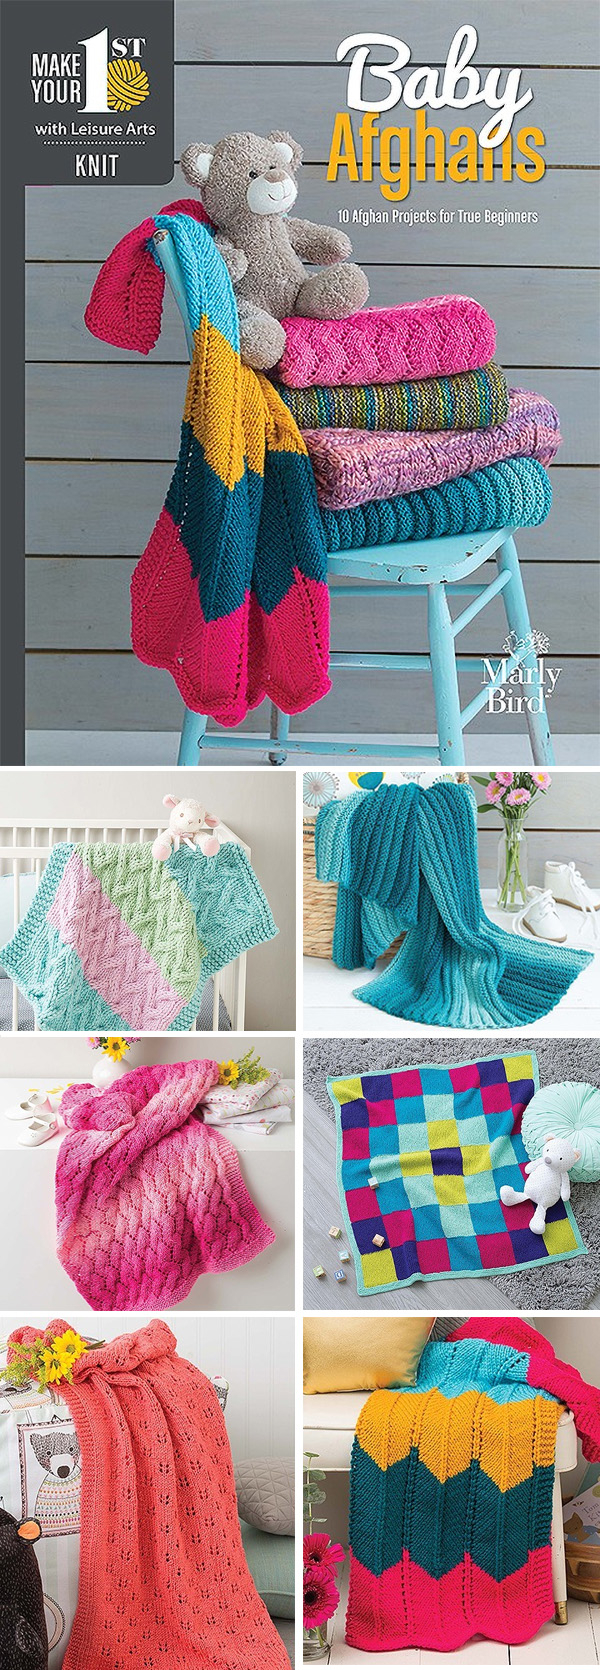 Free Easy Baby Blanket Knitting Patterns For Beginners Easy Ba Blanket Knitting Patterns In The Loop Knitting